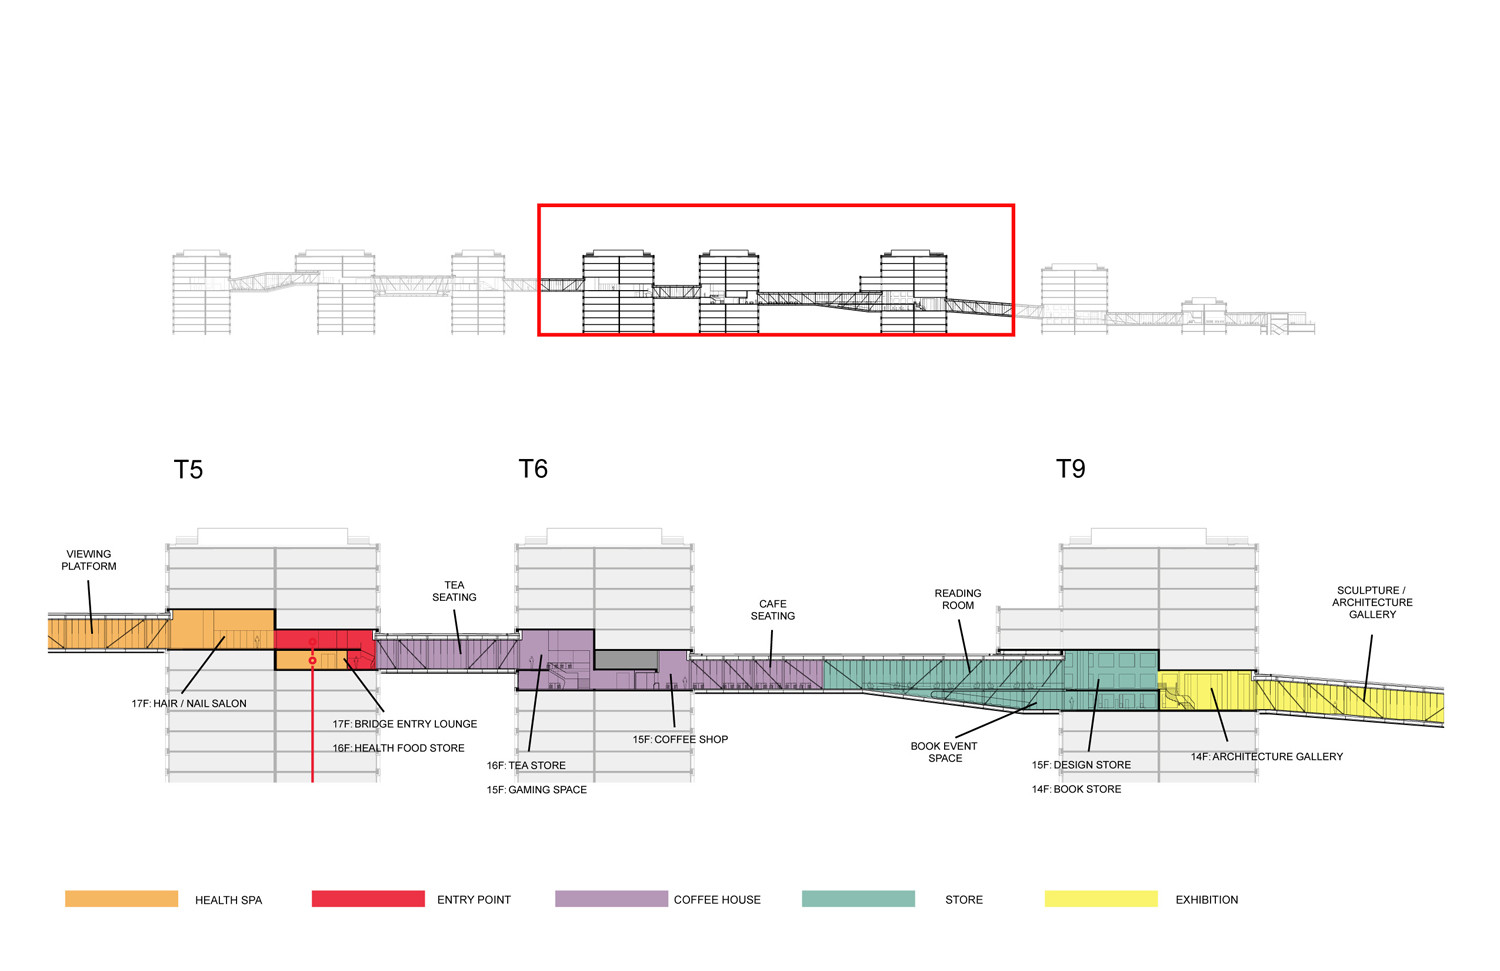 Gallery of linked hybrid steven holl architects 43 for Architecture hybride